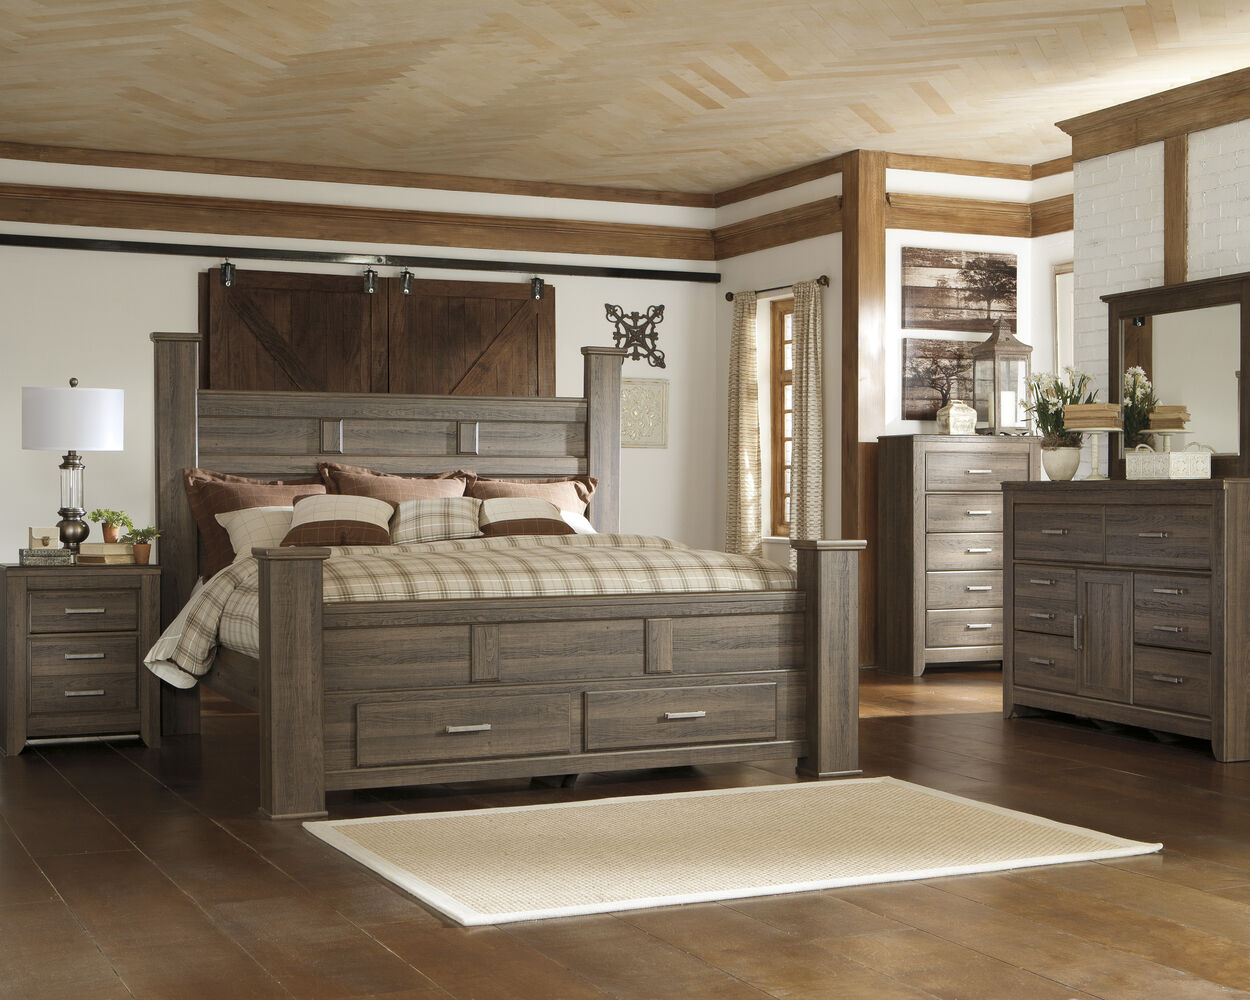 brothers dark mhfi patterned sets piece weave bedroom images four furniture set in cherry mathis